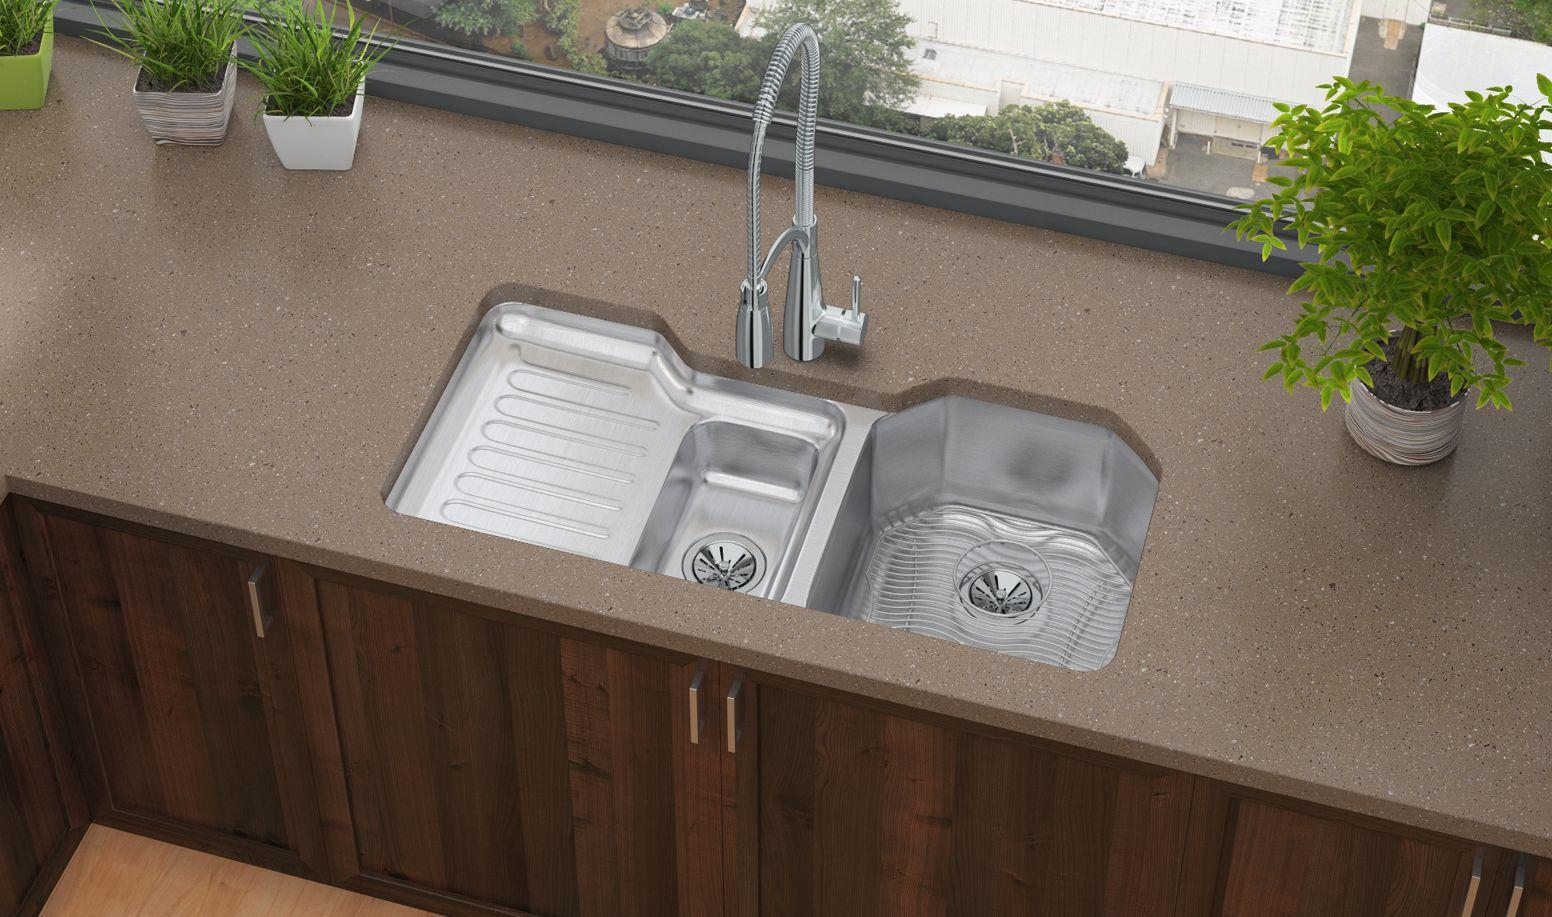 elkay kitchen sinks islands that look like furniture stainless steel everything you need to know qualitybath com 41 1 2 sink